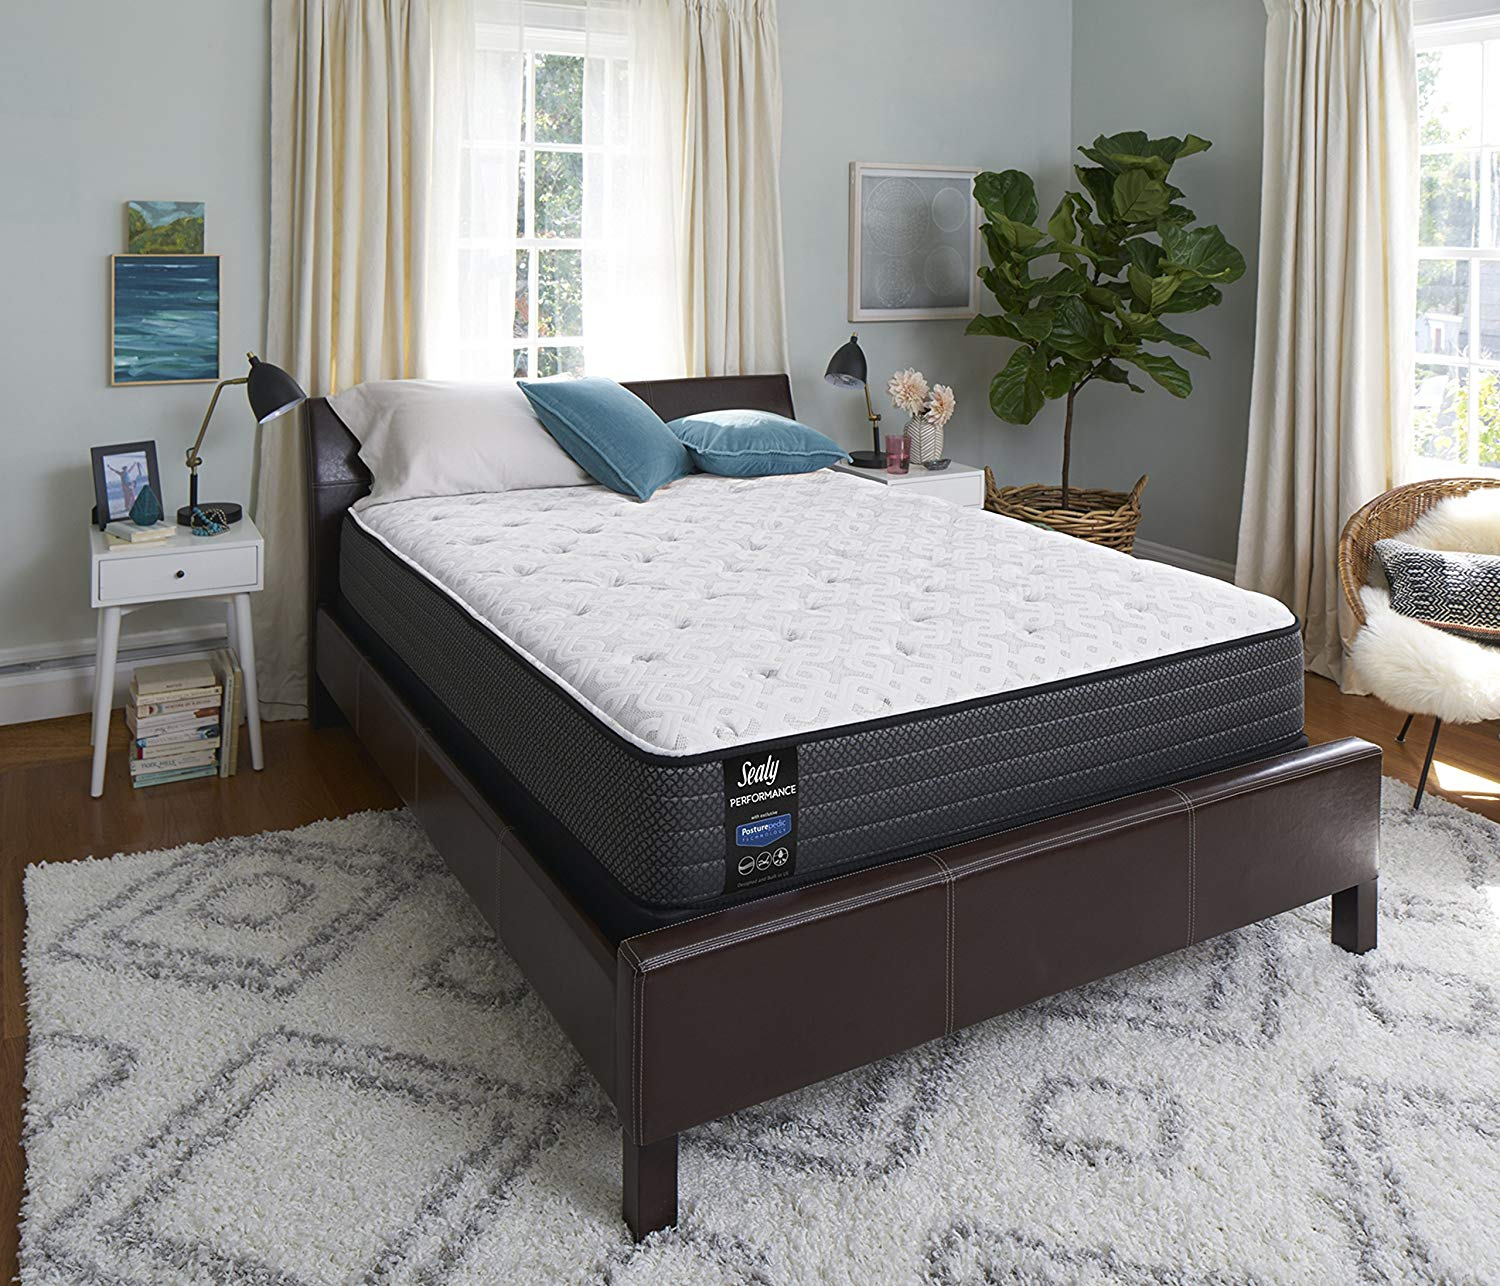 Sealy Response Performance 12-Inch Plush Tight Top Queen Mattress only $343.45! (43% off)